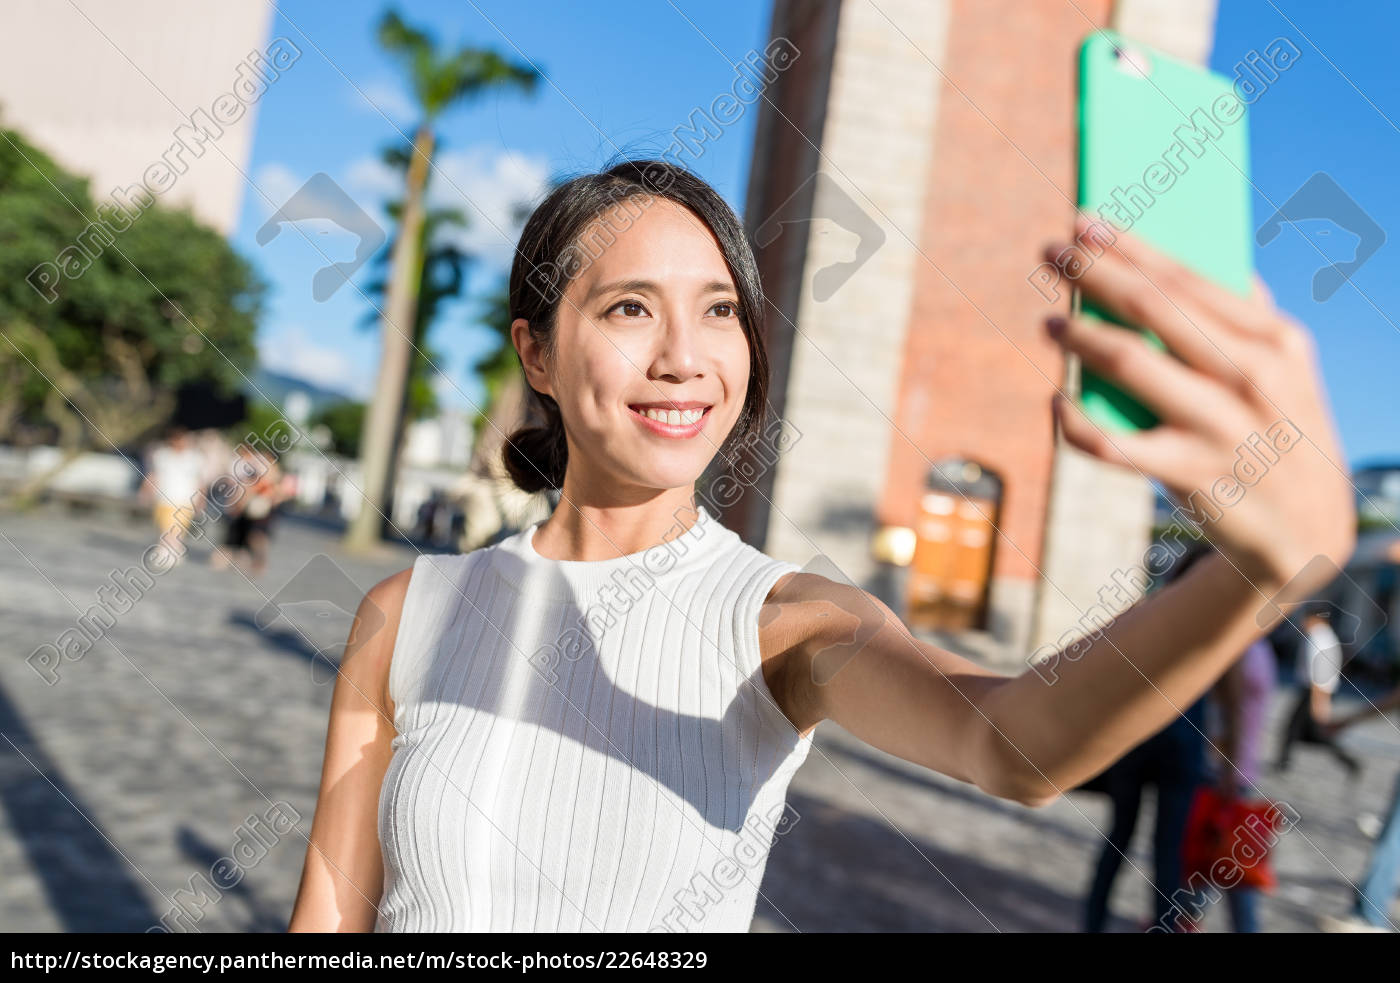 young, woman, taking, selfie, with, mobile - 22648329